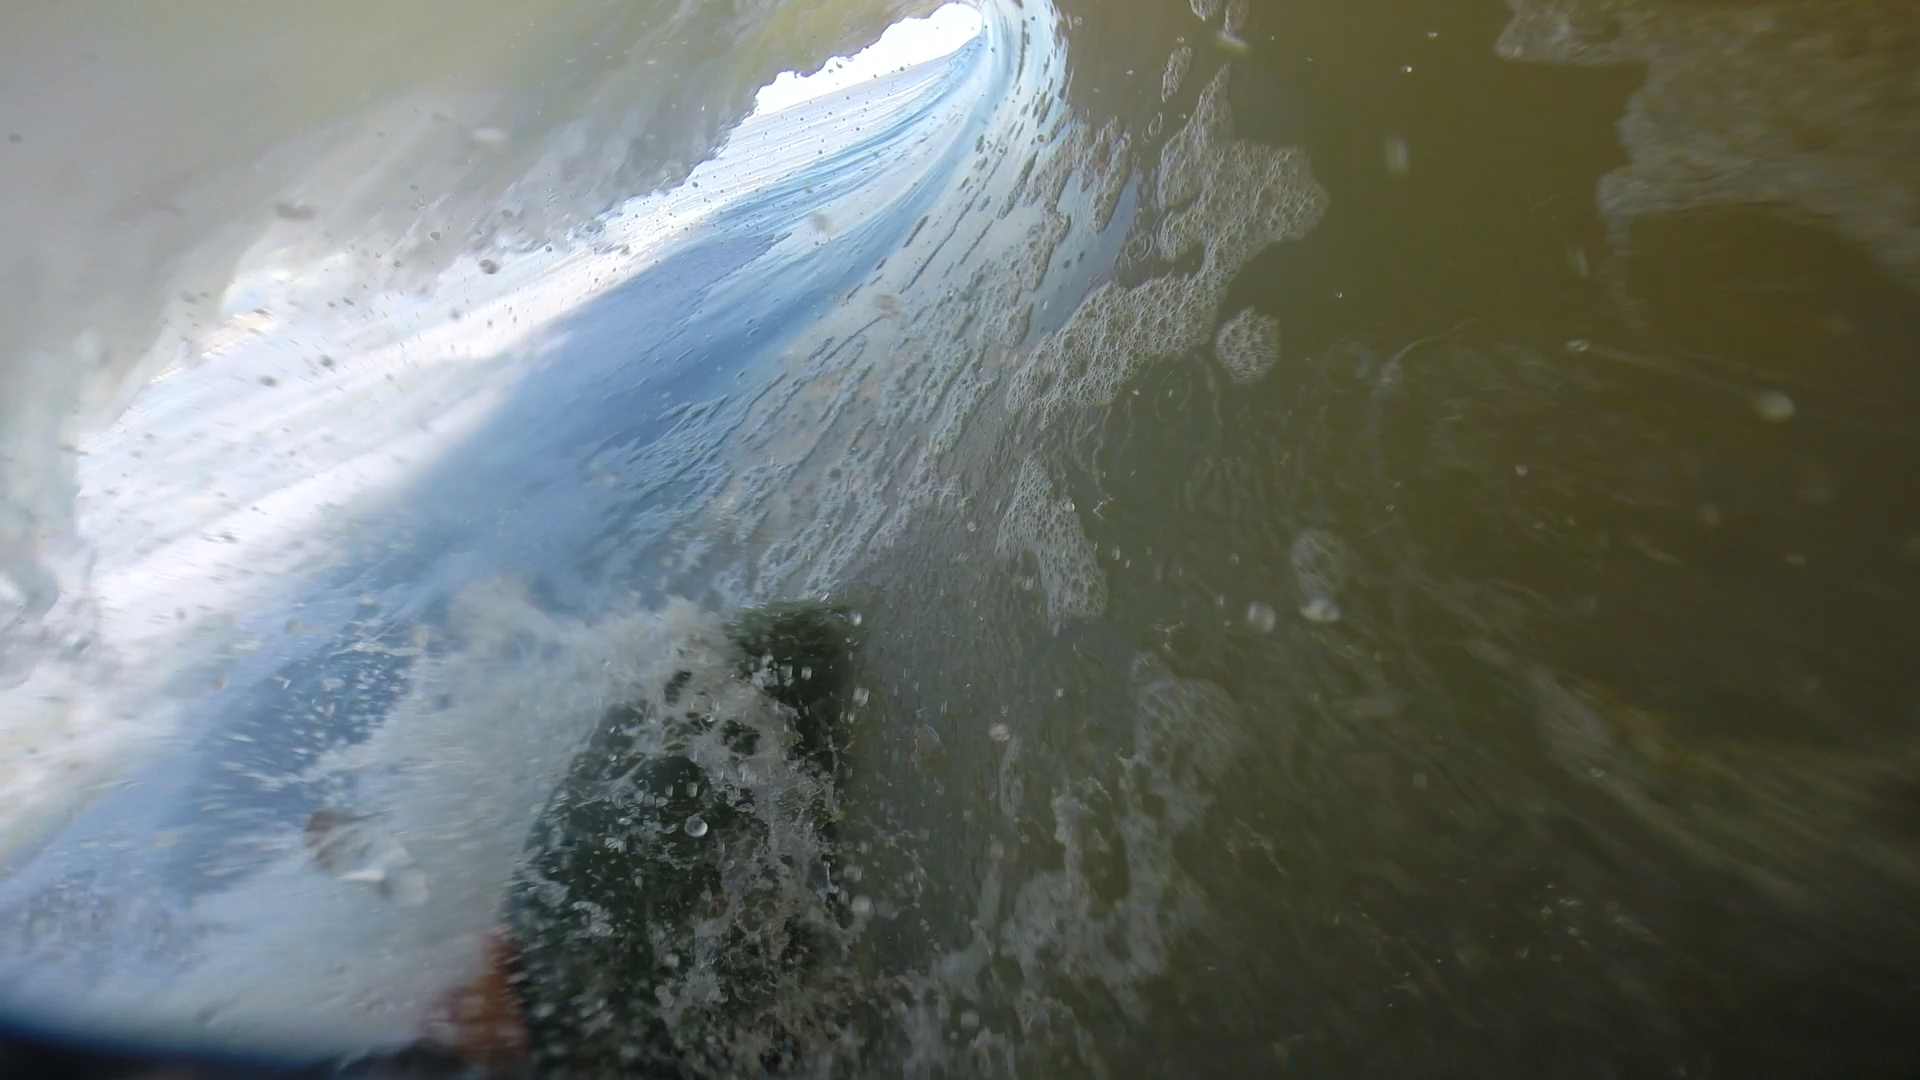 Venice florida surfing contest entries from feb 17 2016 www these are contest entries from a surfer in venice these gopro shots are from a secret beach break at a select sandbar during the small west swell from a nvjuhfo Choice Image